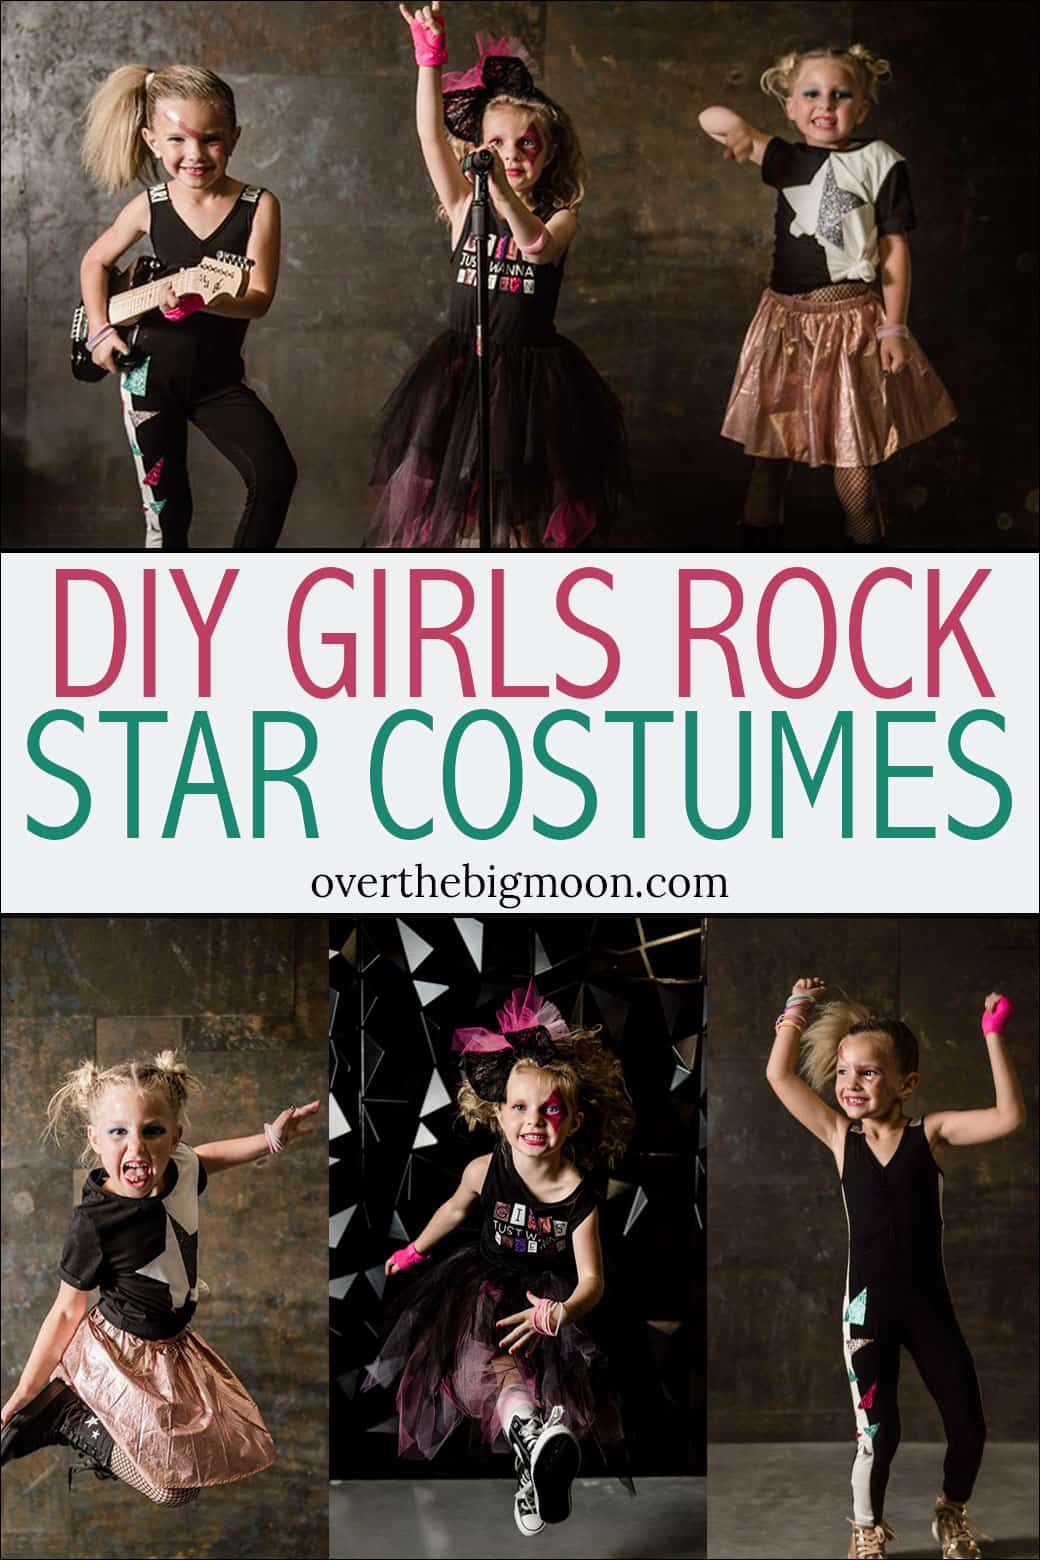 DIY Girls Rock Star Costumes tutorials! THREE looks that are perfect for Halloween costumes or for dress up! From overthebigmoon.com!